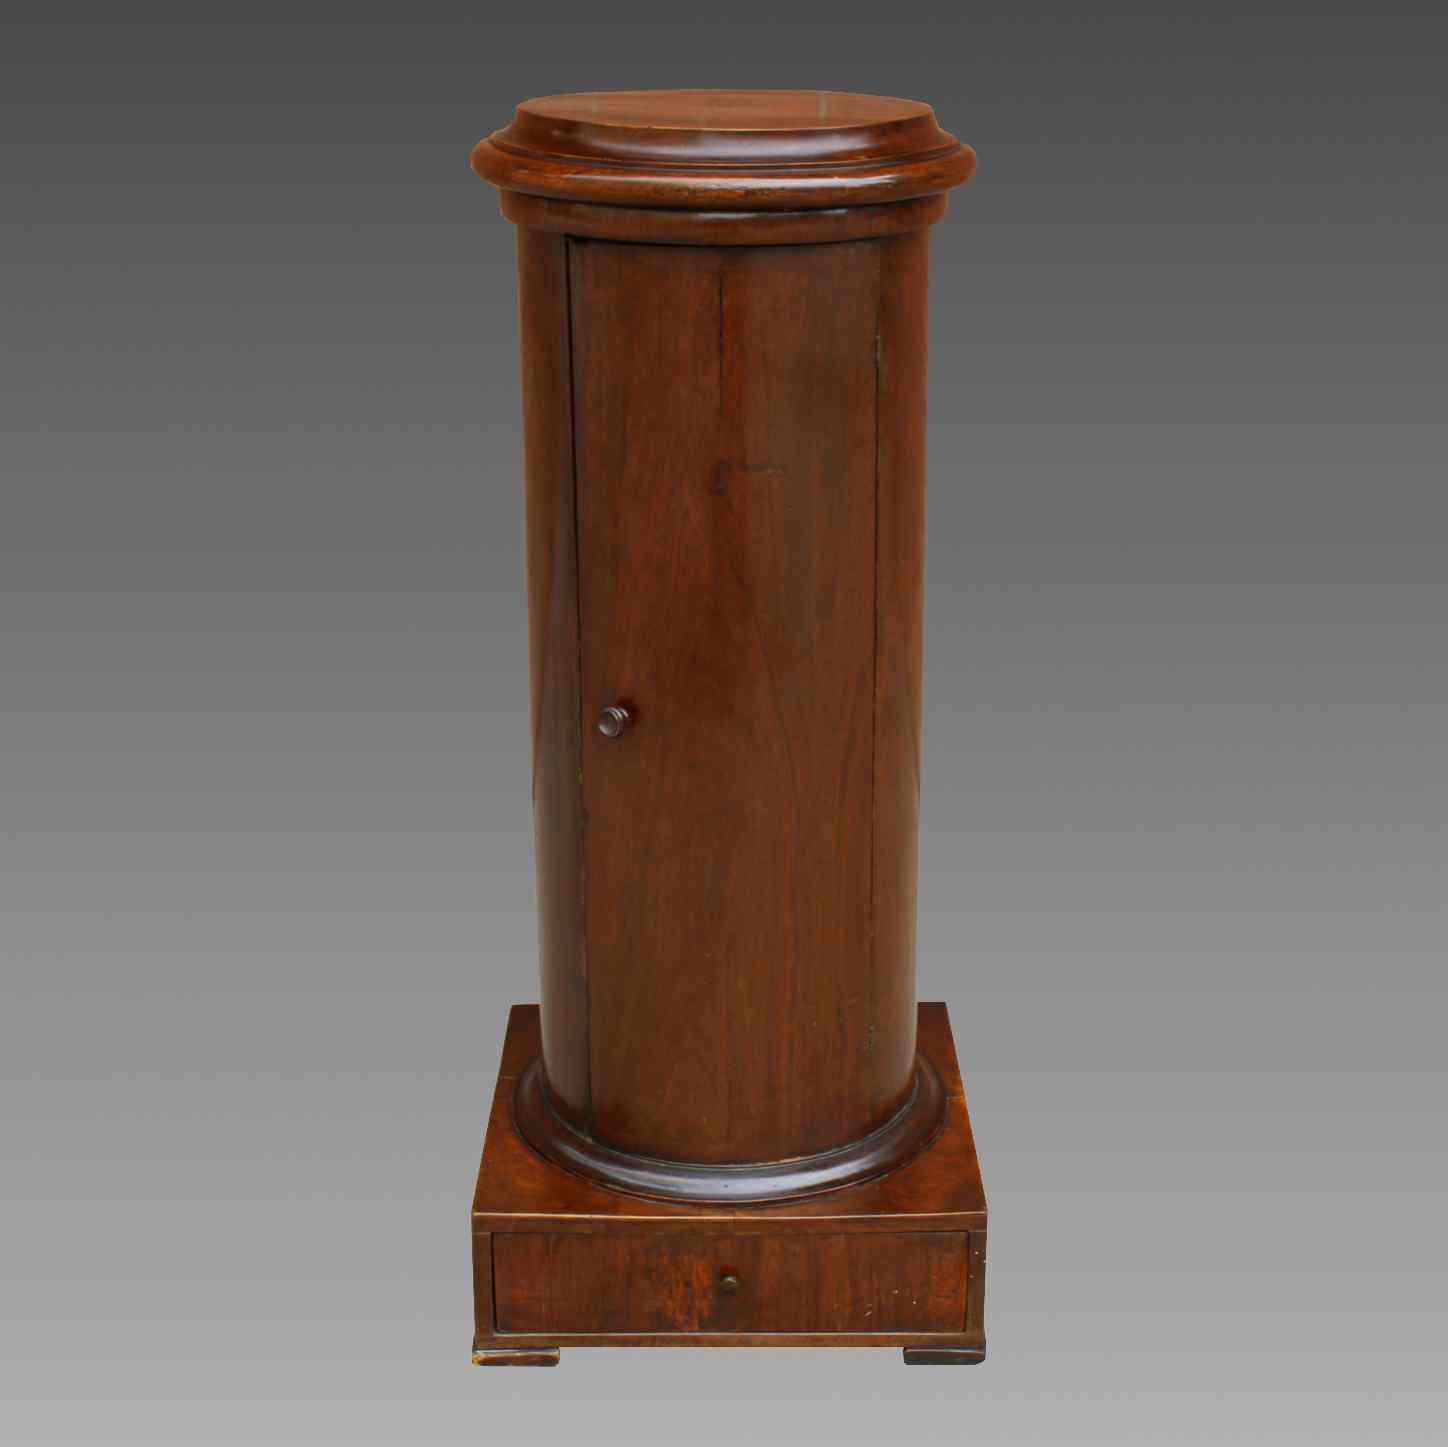 Antique Empire Somno Column in walnut - Italy 19th century